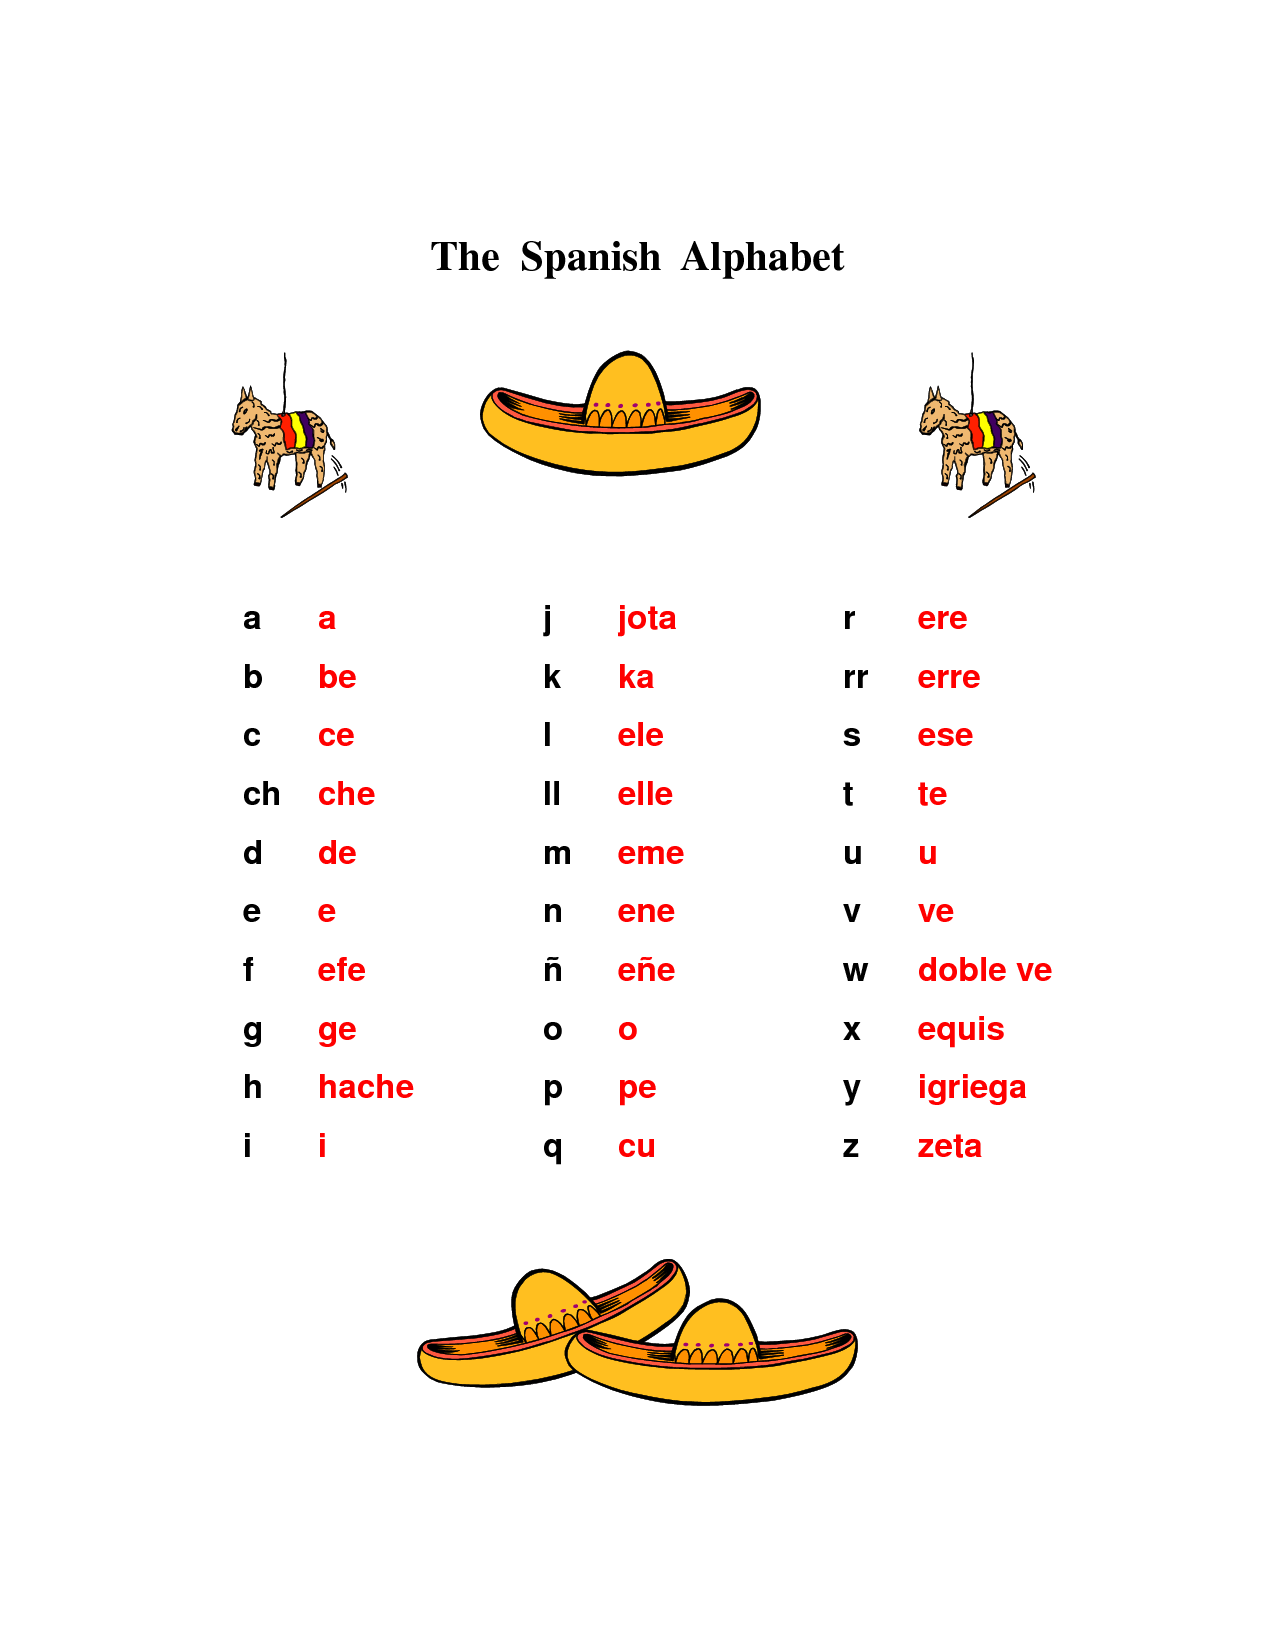 Names Of The Letters In Spanish Alphabet